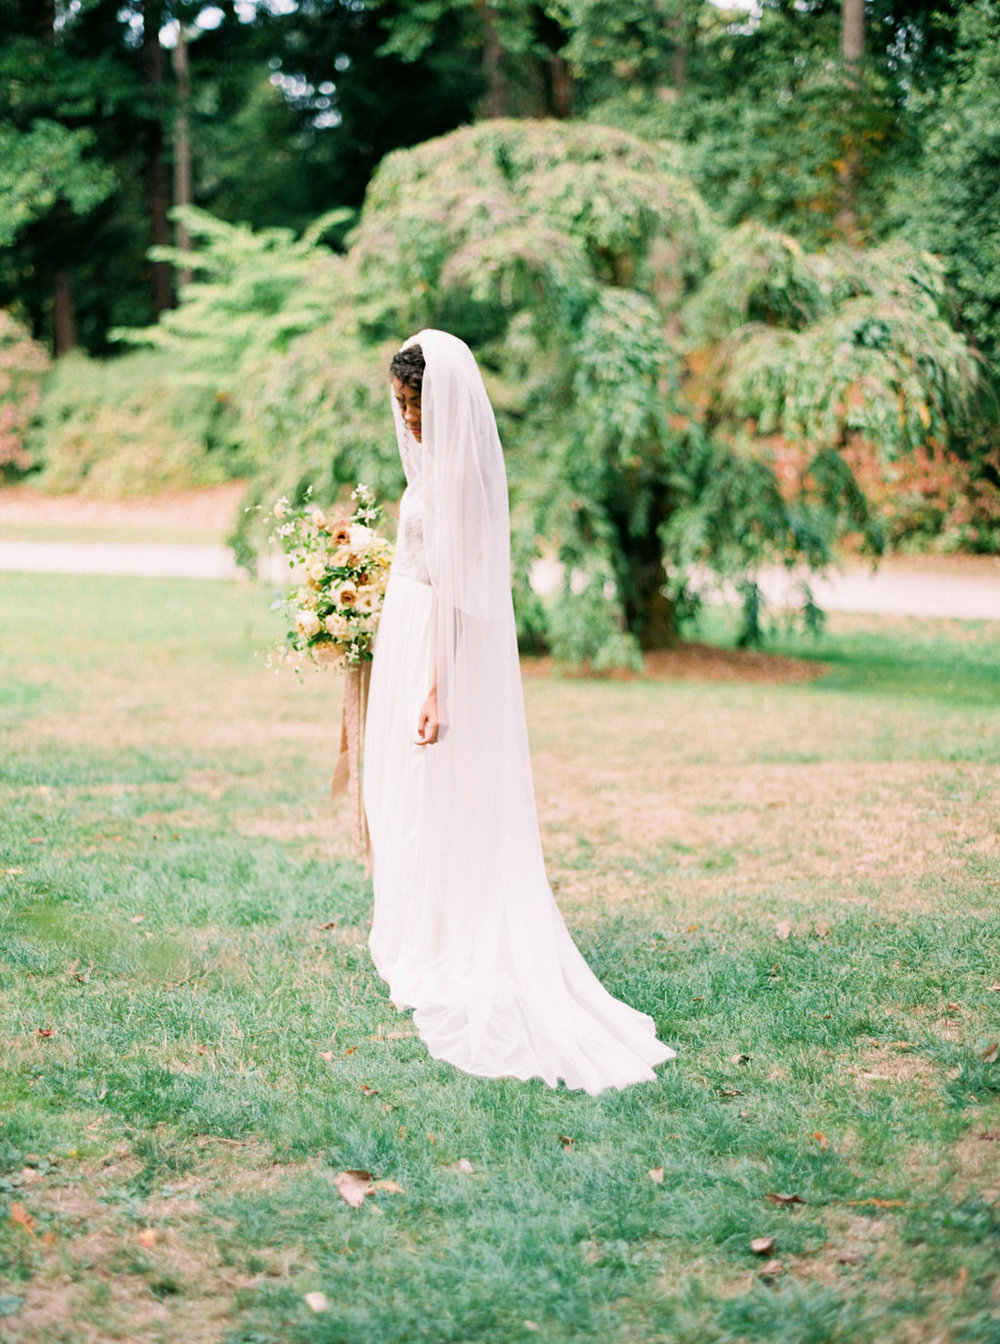 Wedding Wise, Seattle Wedding Planner | 2017 Pantone Color of the Year, Greenery | Sarah Carpenter Photography | Bride with a veil